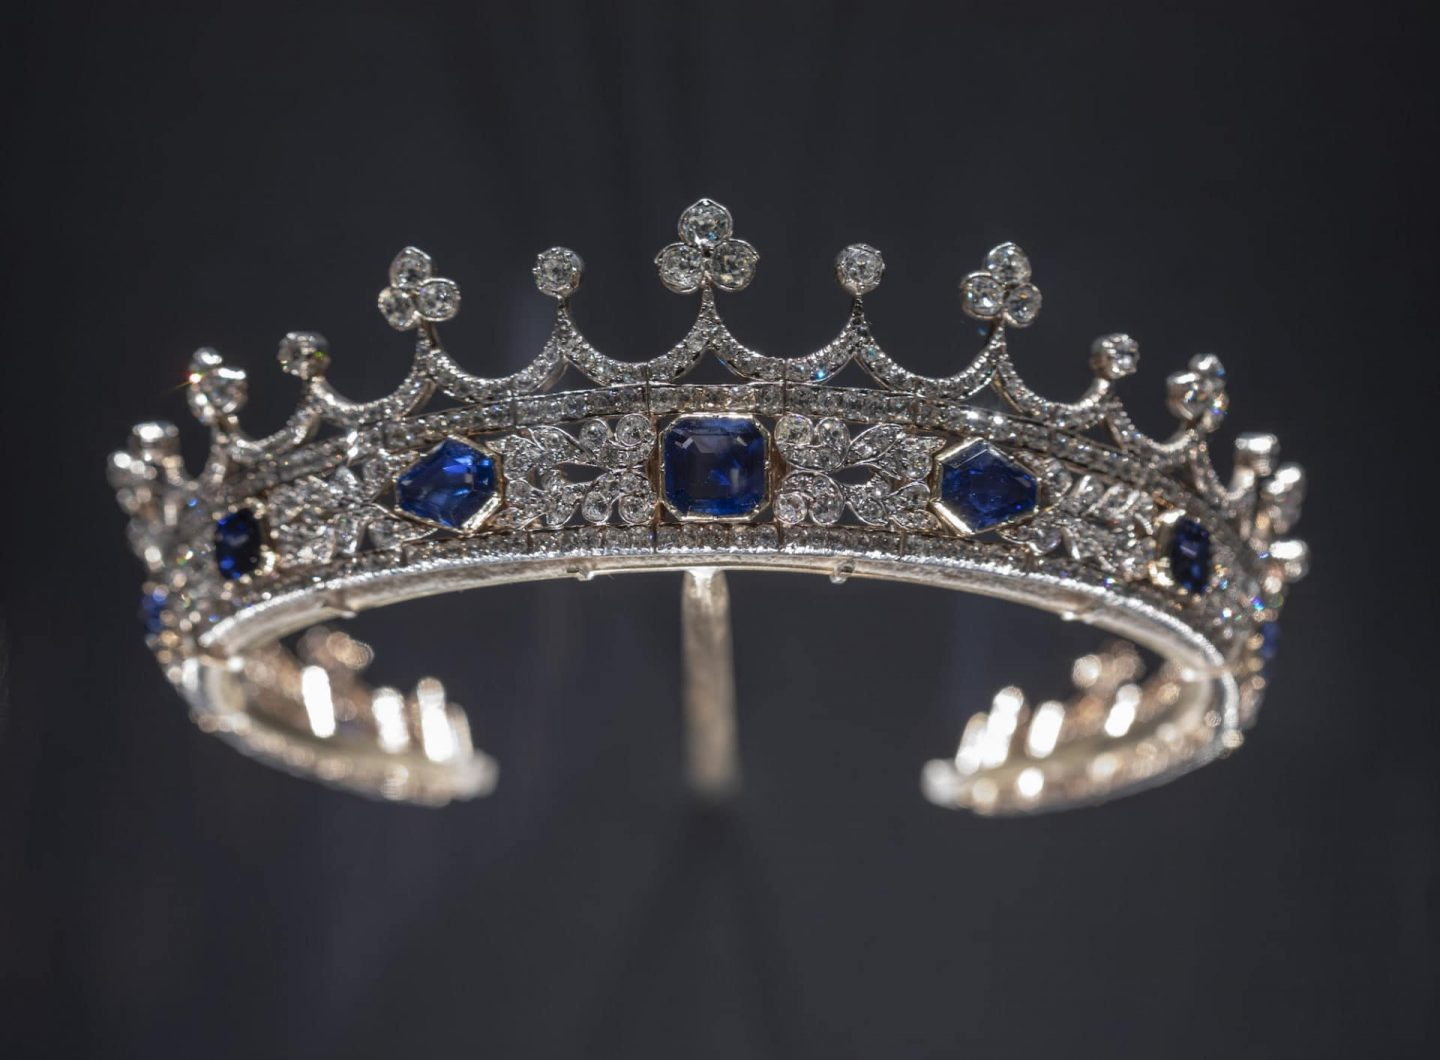 where to see jewel and royal treasure in london - V&A museum